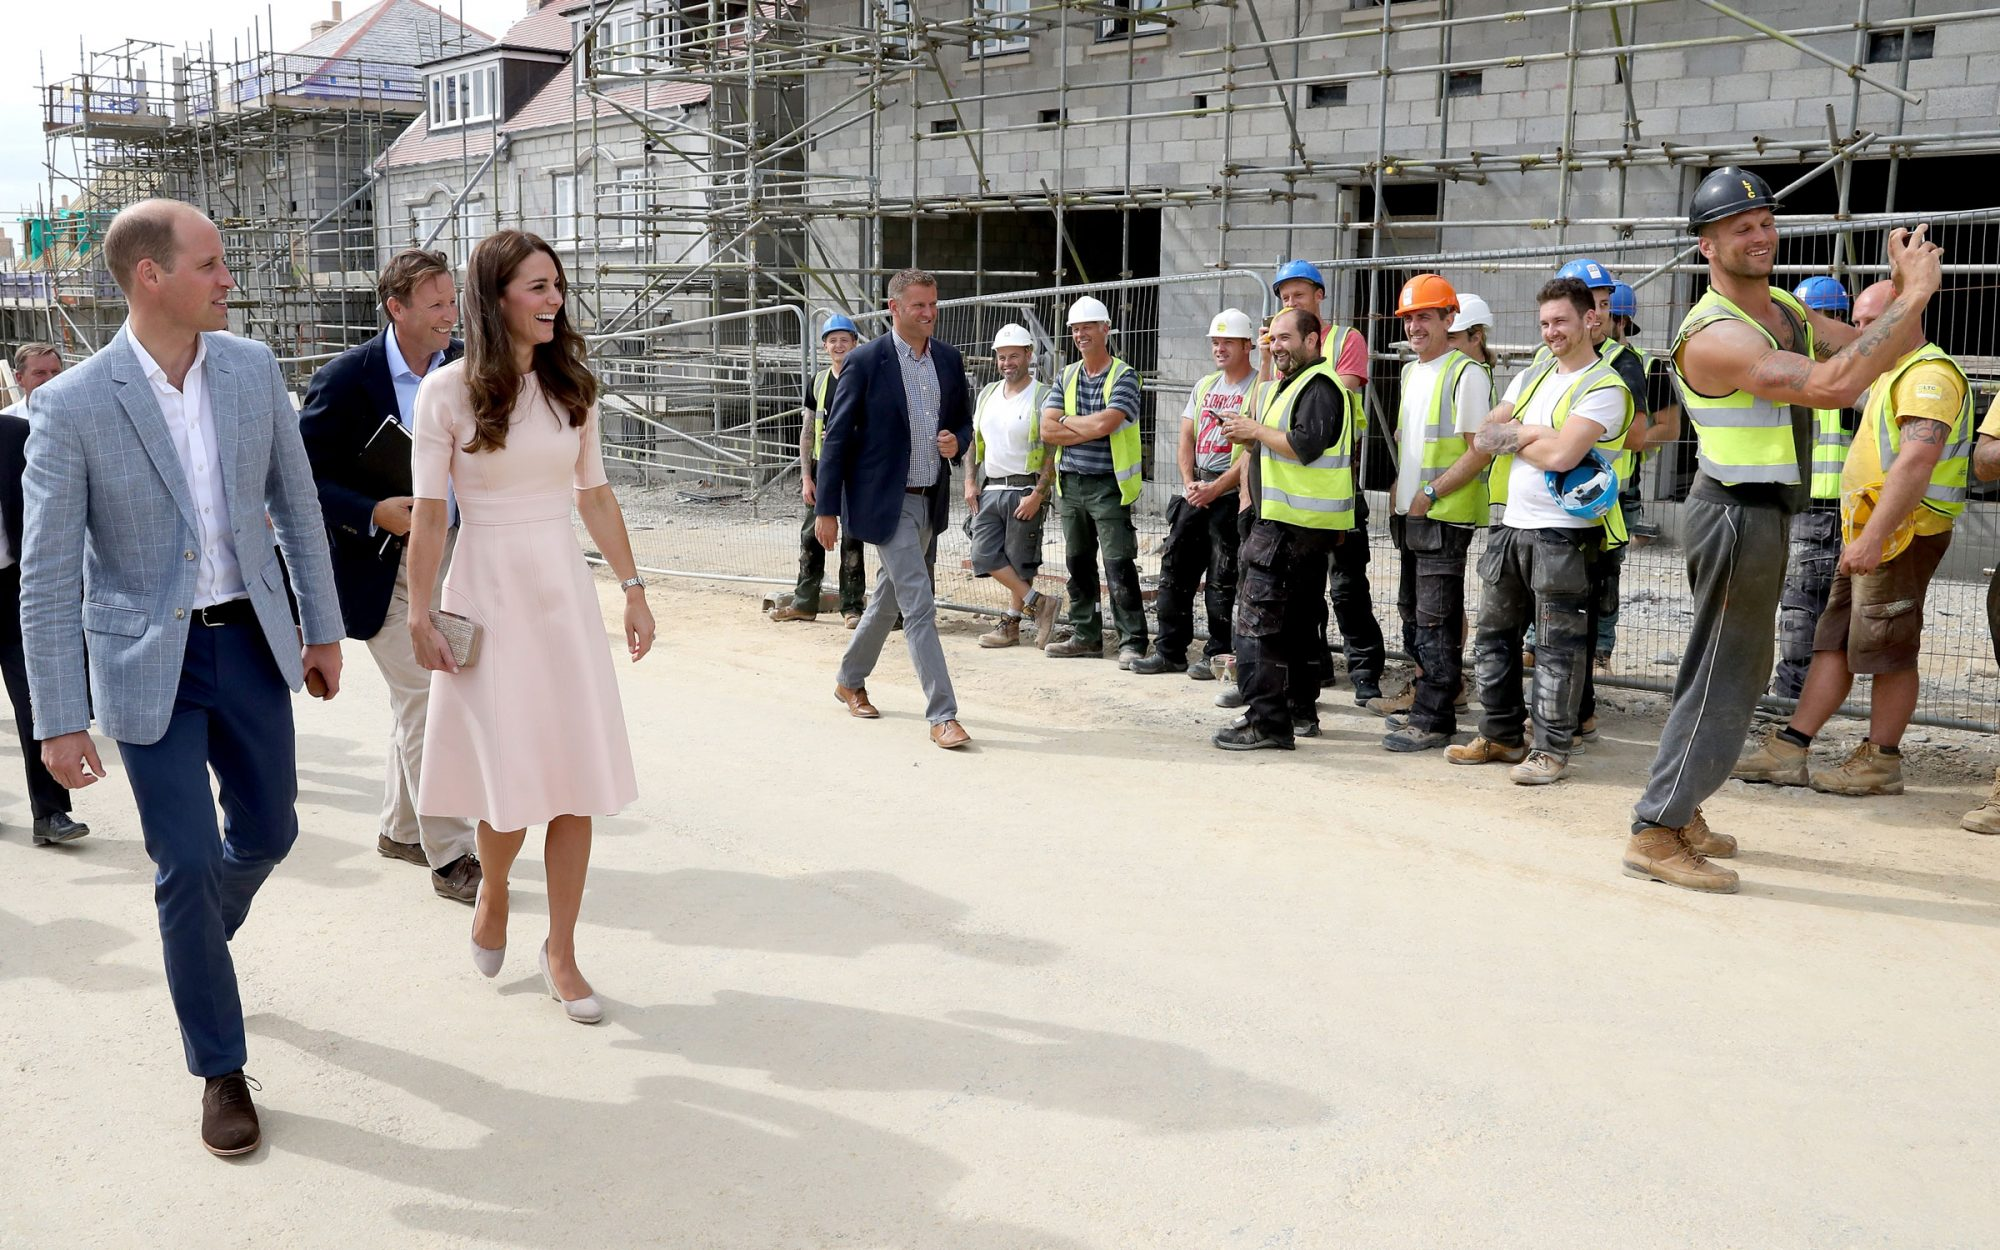 Construction Worker Caught Taking a Selfie with Kate Middleton and Prince William